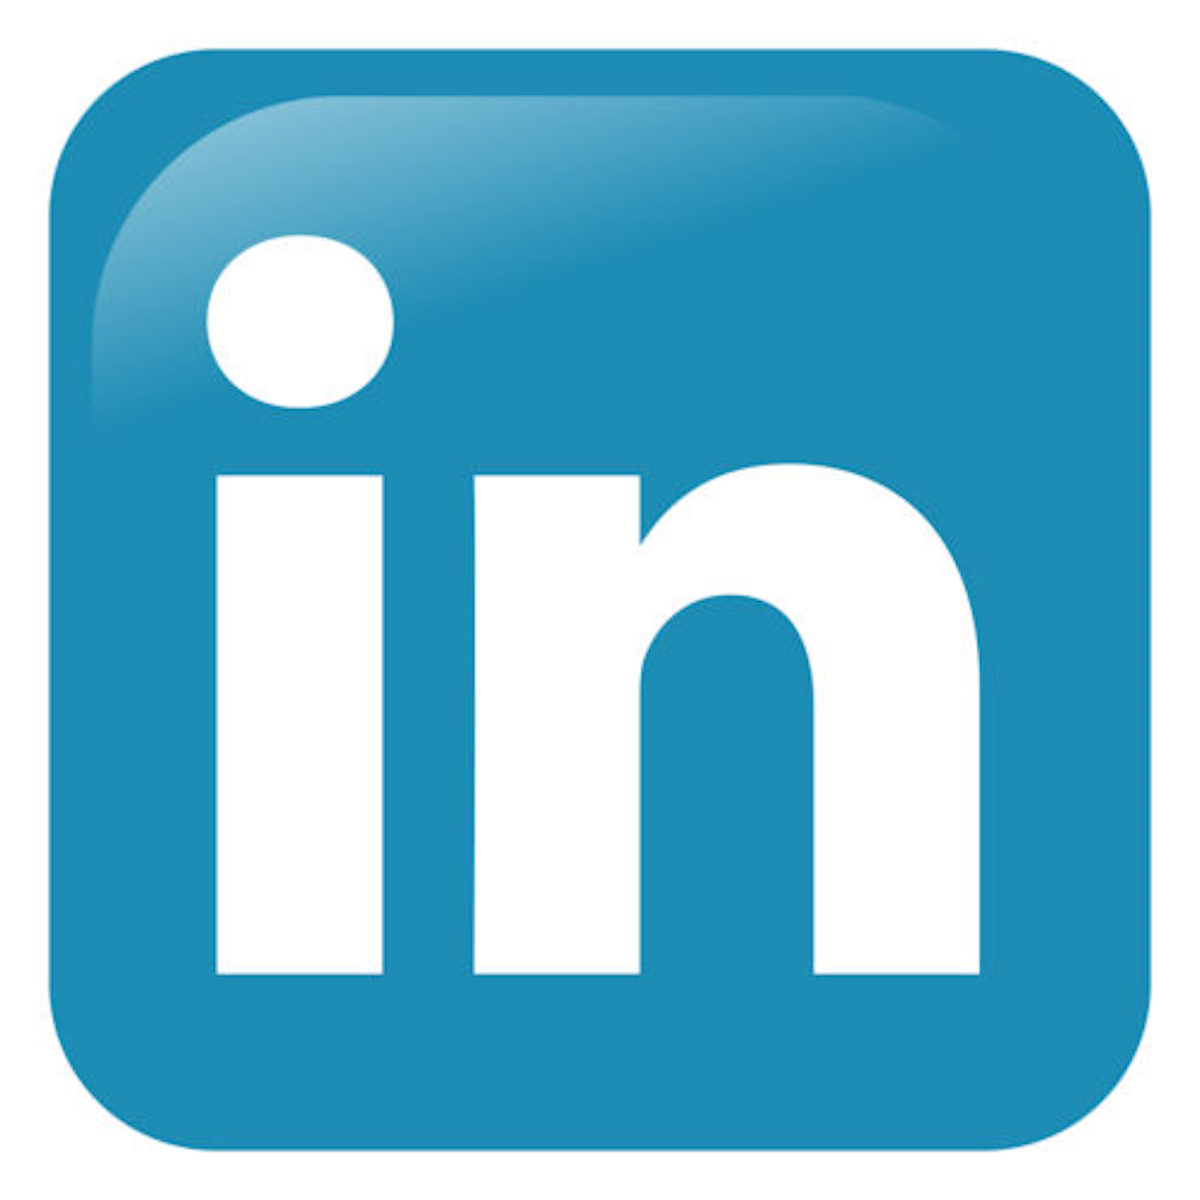 The LinkedIn Company Page for Law Firms - Why and How?